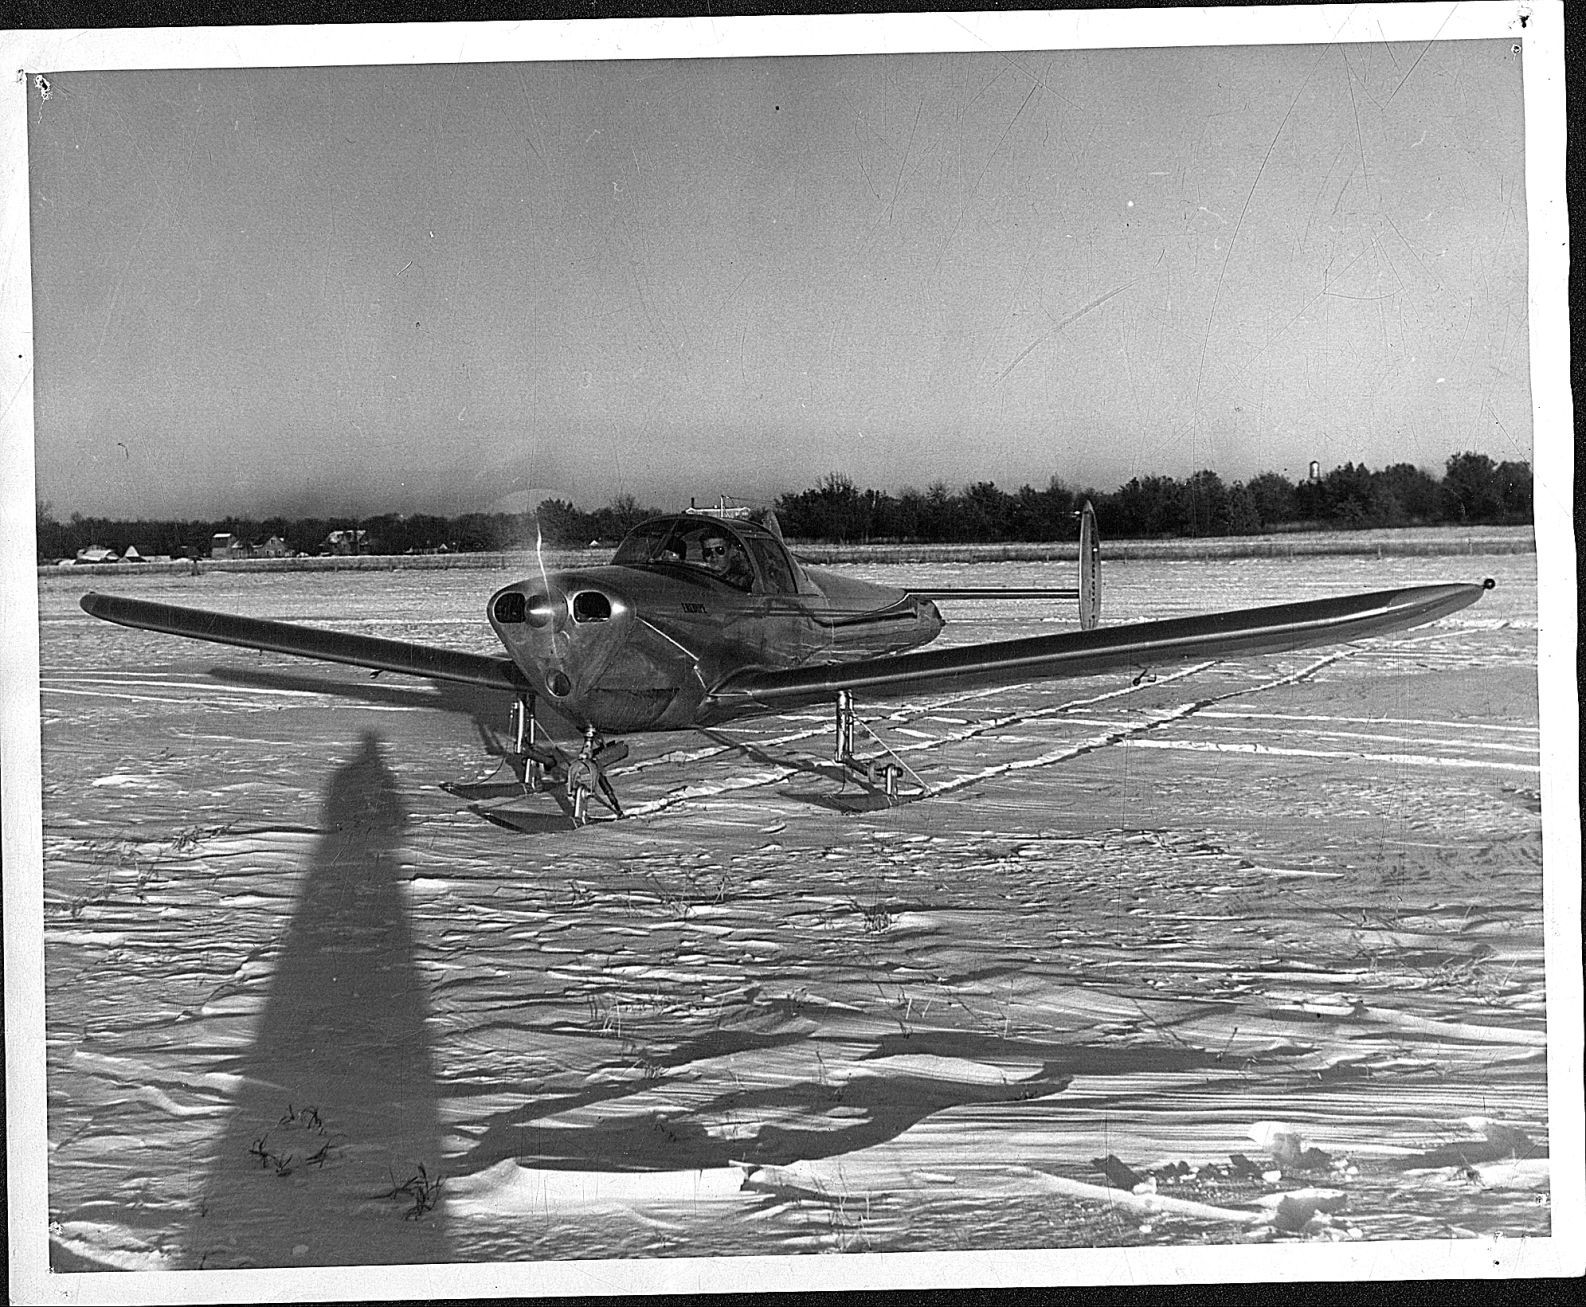 cover letter for little experience%0A Valley aviation history lecture slated for Wednesday   The Herald Journal    news hjnews com